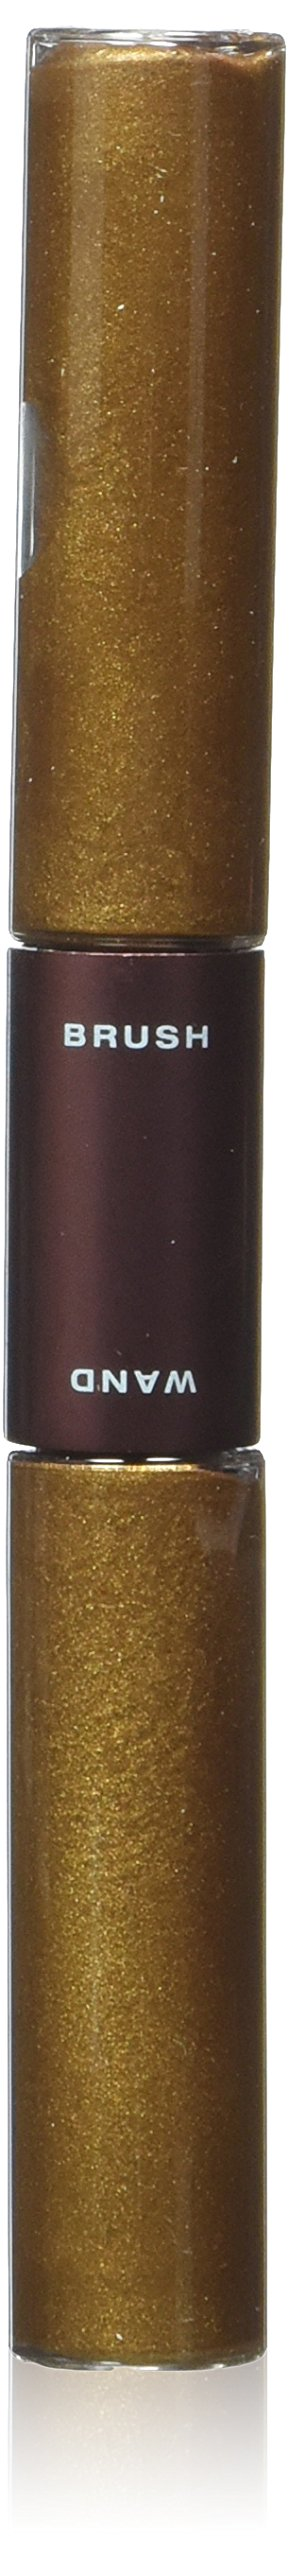 Mineral Fusion Gray Root Concealer, Light Brown.28 Ounce